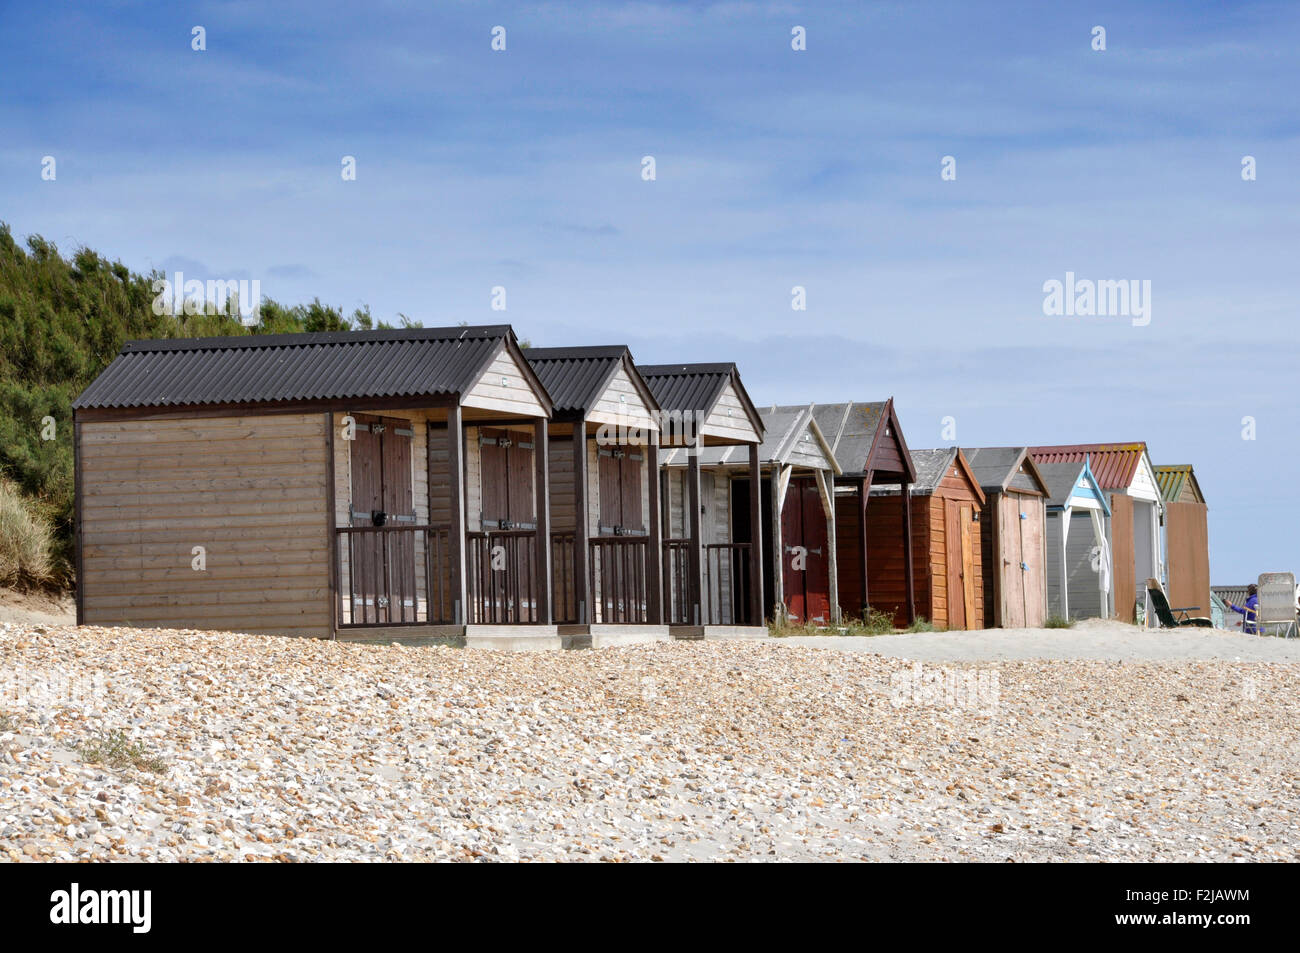 Summer sunlight - bright blue sky - at the beach - wooden beach huts - dreary and dull - contrast - scope for renovation - Stock Image